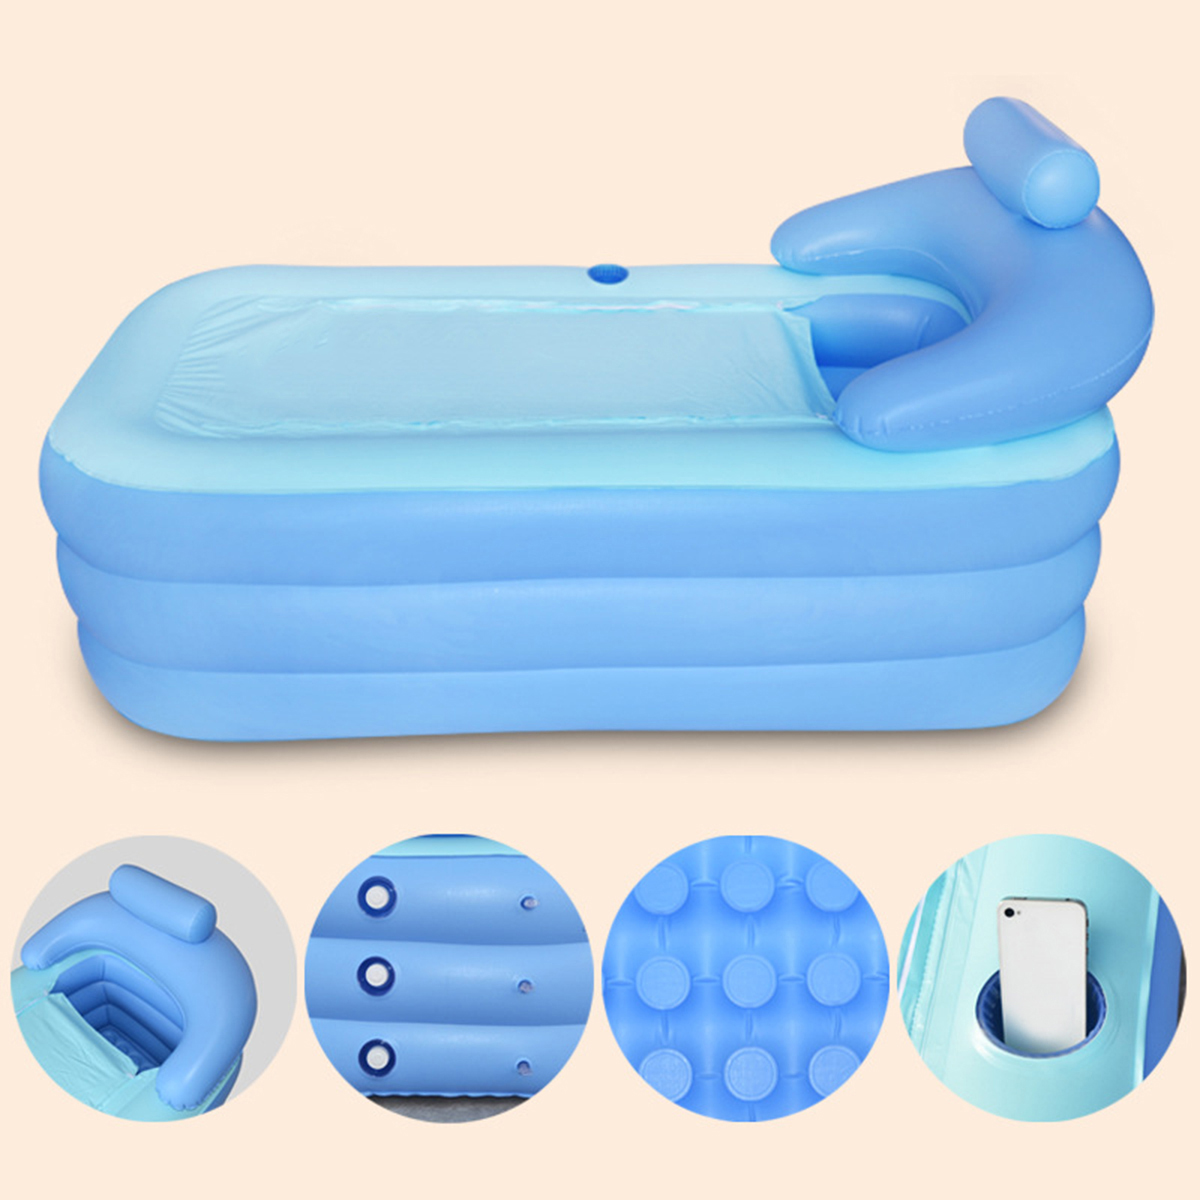 Big Inflatable Couch Us 66 52 17 Off Aliexpress Buy 160 84 64cm Big Size Indoor Outdoor Foldable Inflatable Bath Tub Pvc Adult Bathtub With Air Pump Household